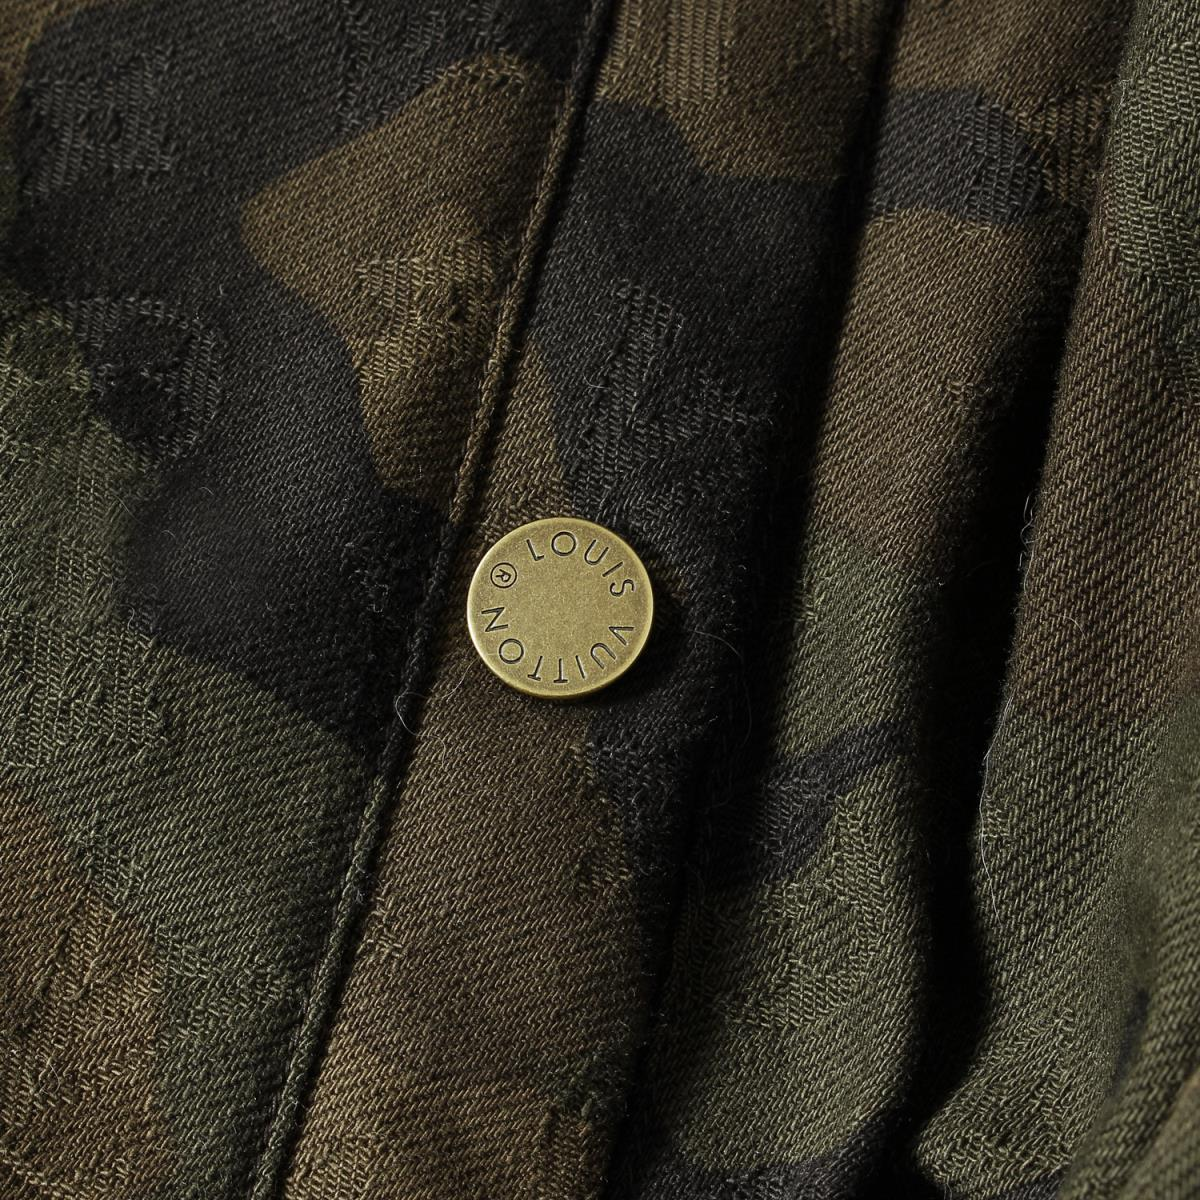 Louis Vuitton Supreme Down Jacket Coat Hoody Parker Camouflage winter lv jackets 7